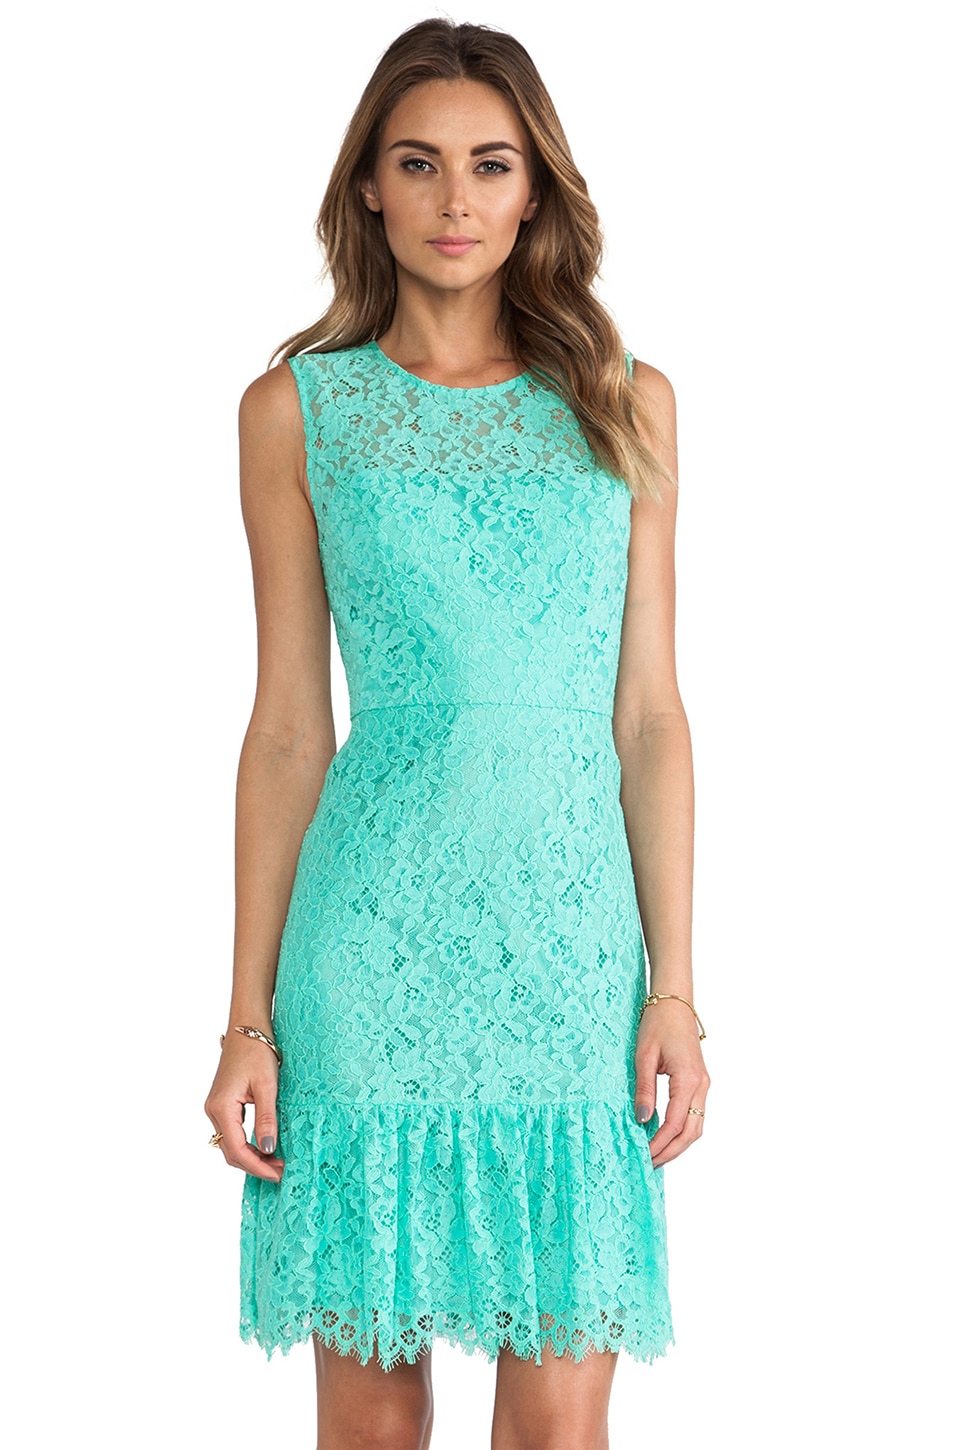 Shoshanna Lace Dress in Aquamarine